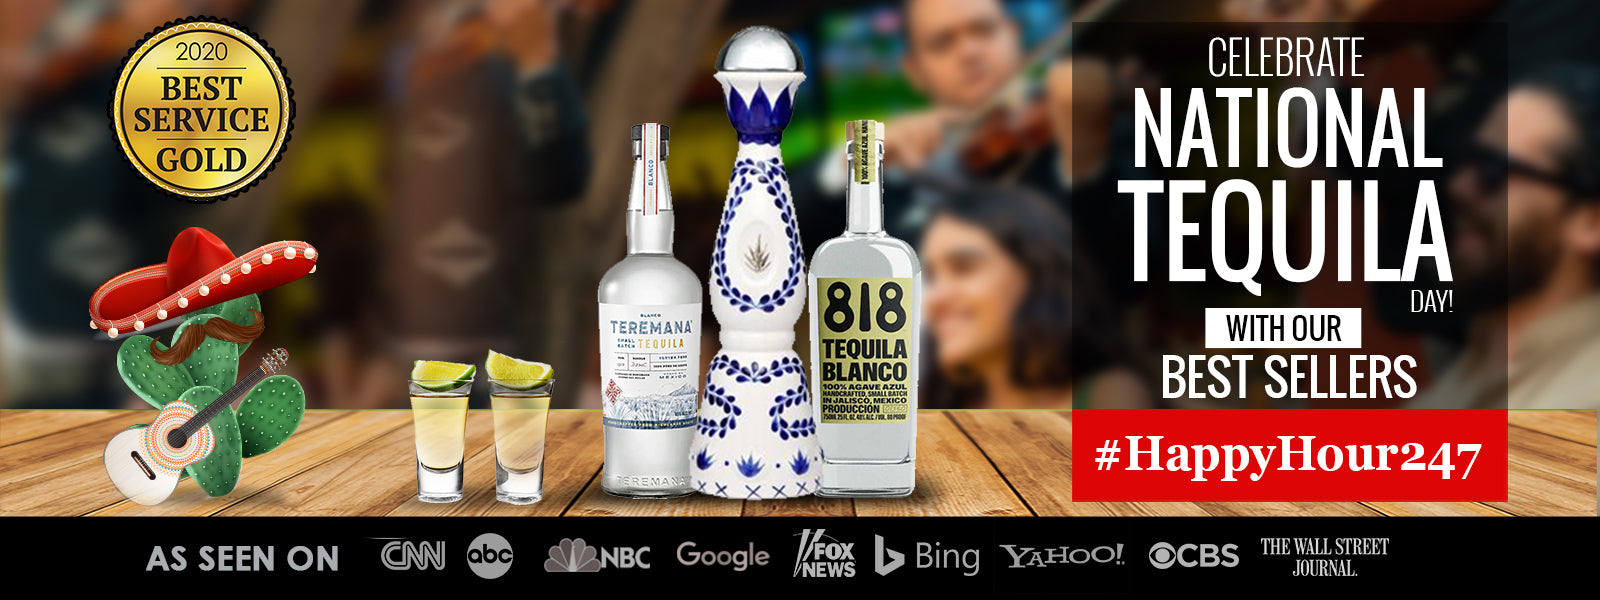 Buy Tequila Online for National Tequila Day at CaskCartel.com